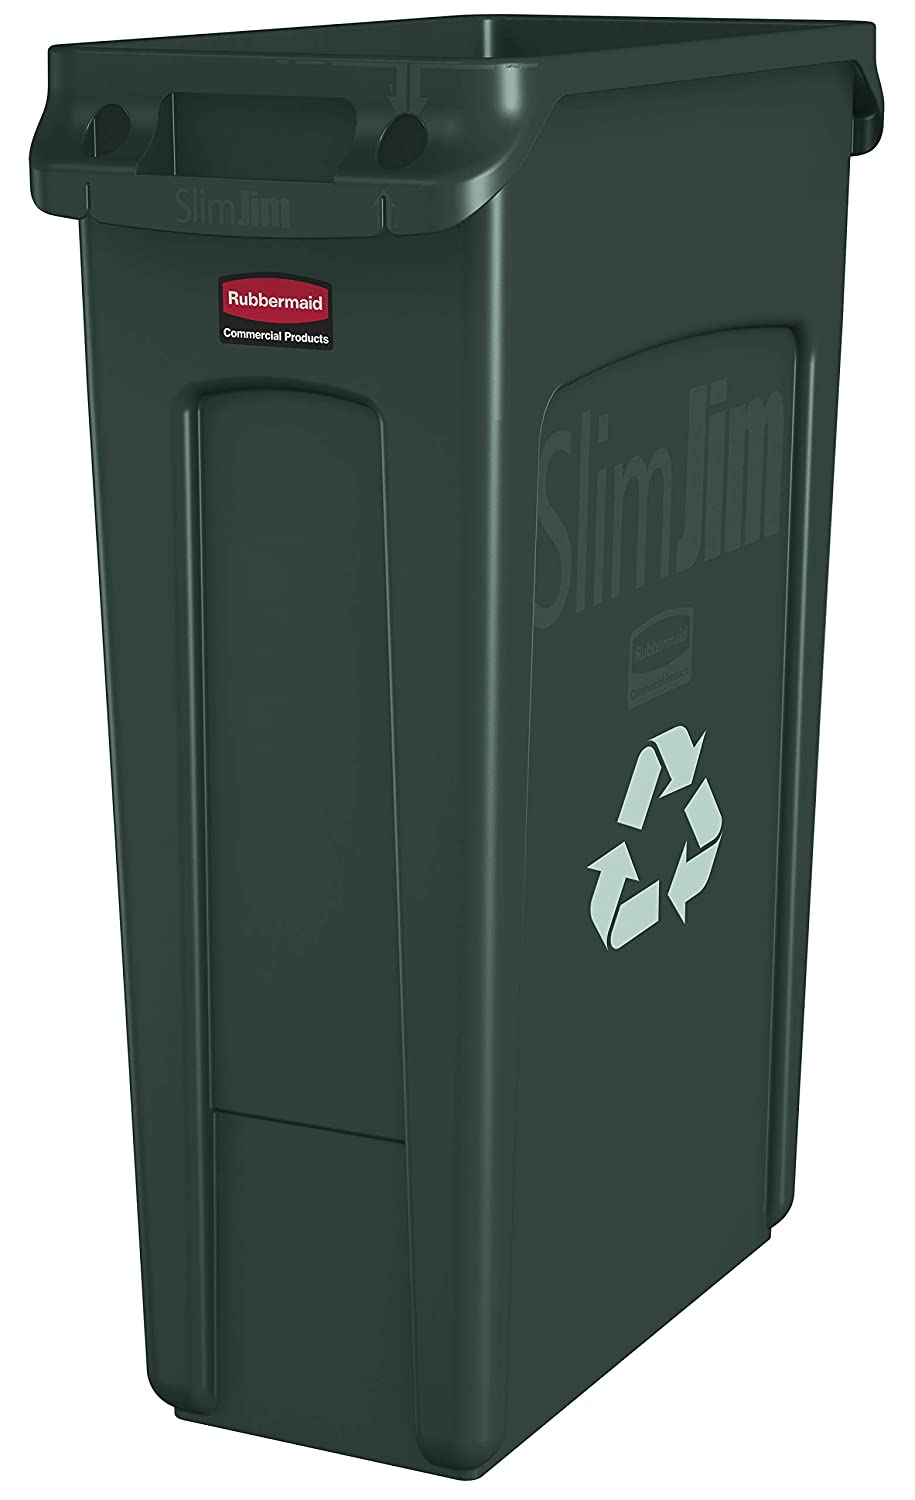 Rubbermaid Slim Jim 844637 Contenedor con asas color gris